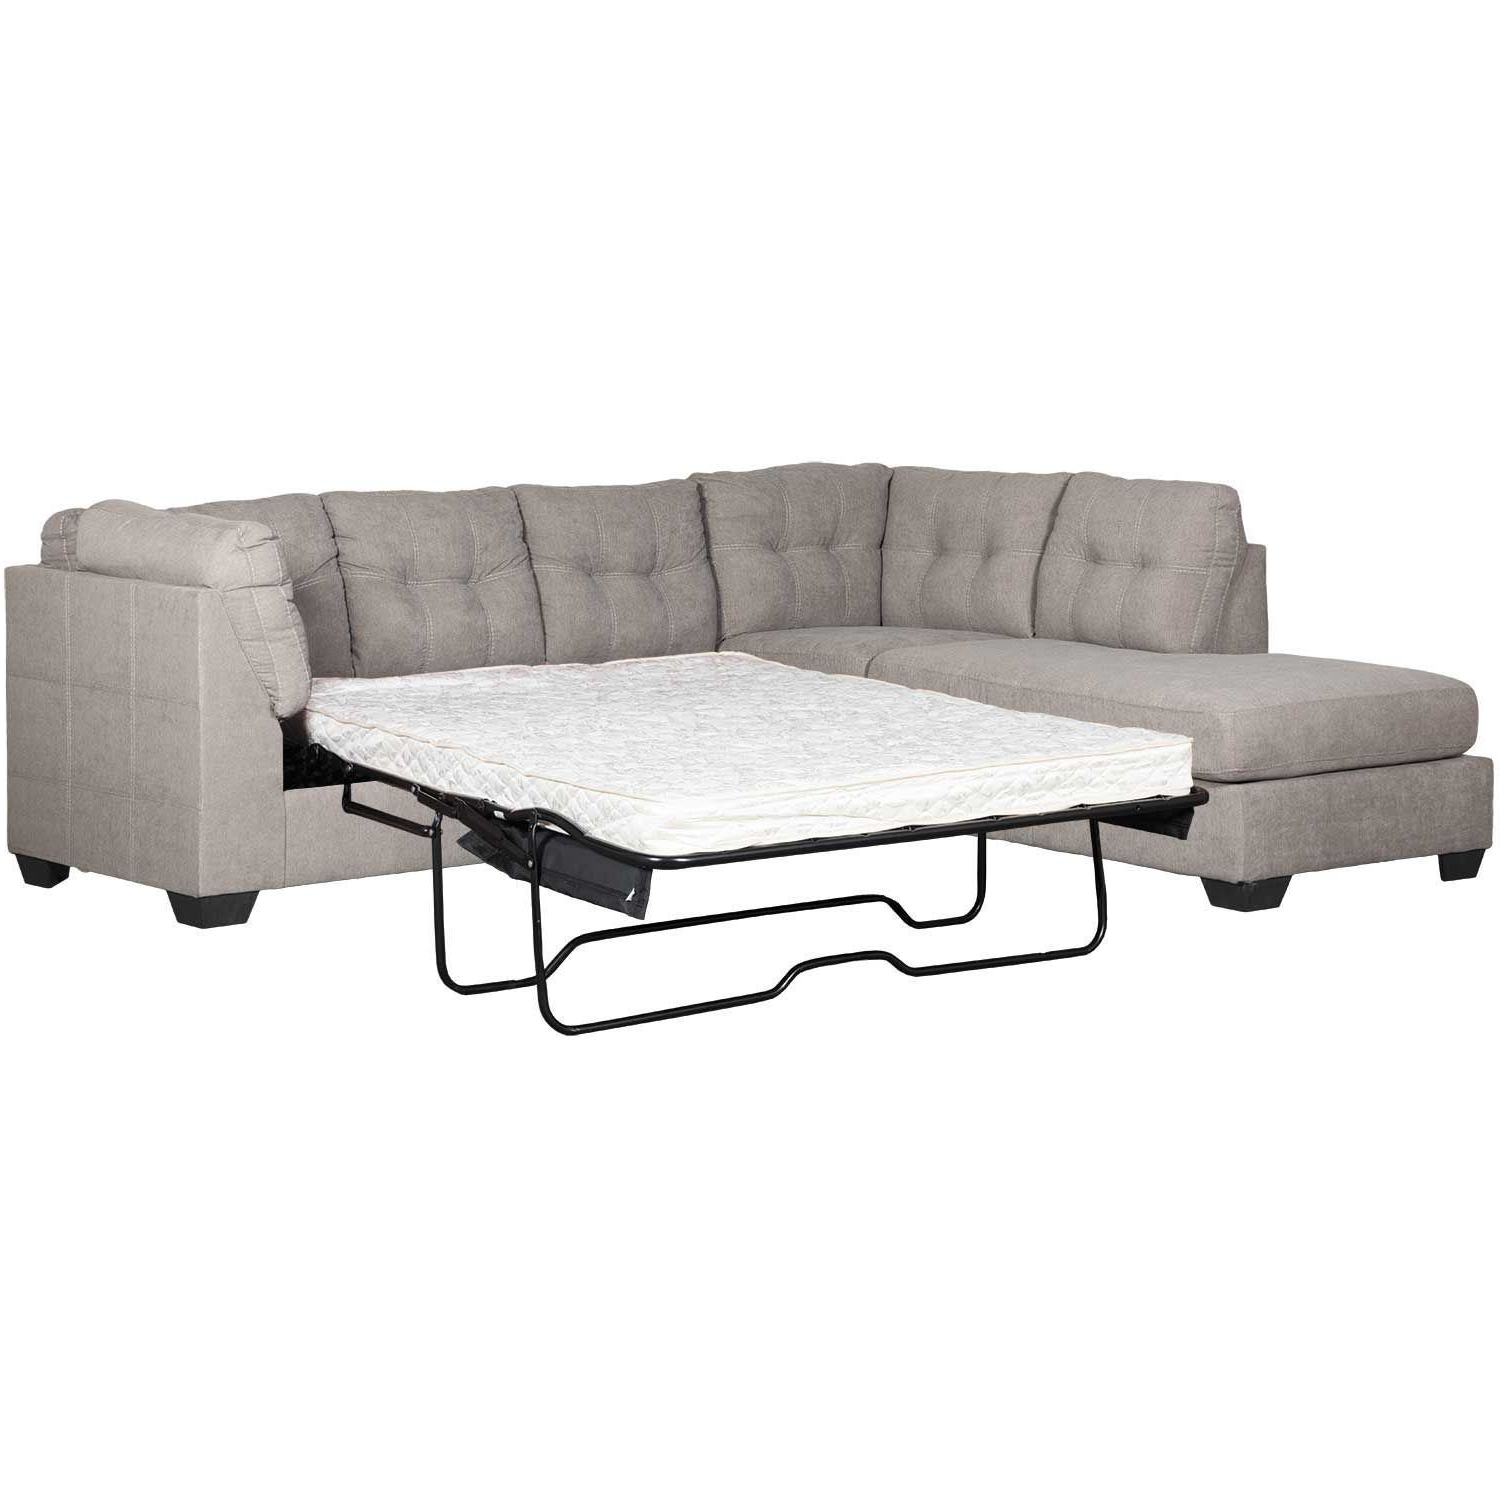 Mercury Right Arm Facing Innerspring Queen With Popular Aspen 2 Piece Sleeper Sectionals With Laf Chaise (View 19 of 20)